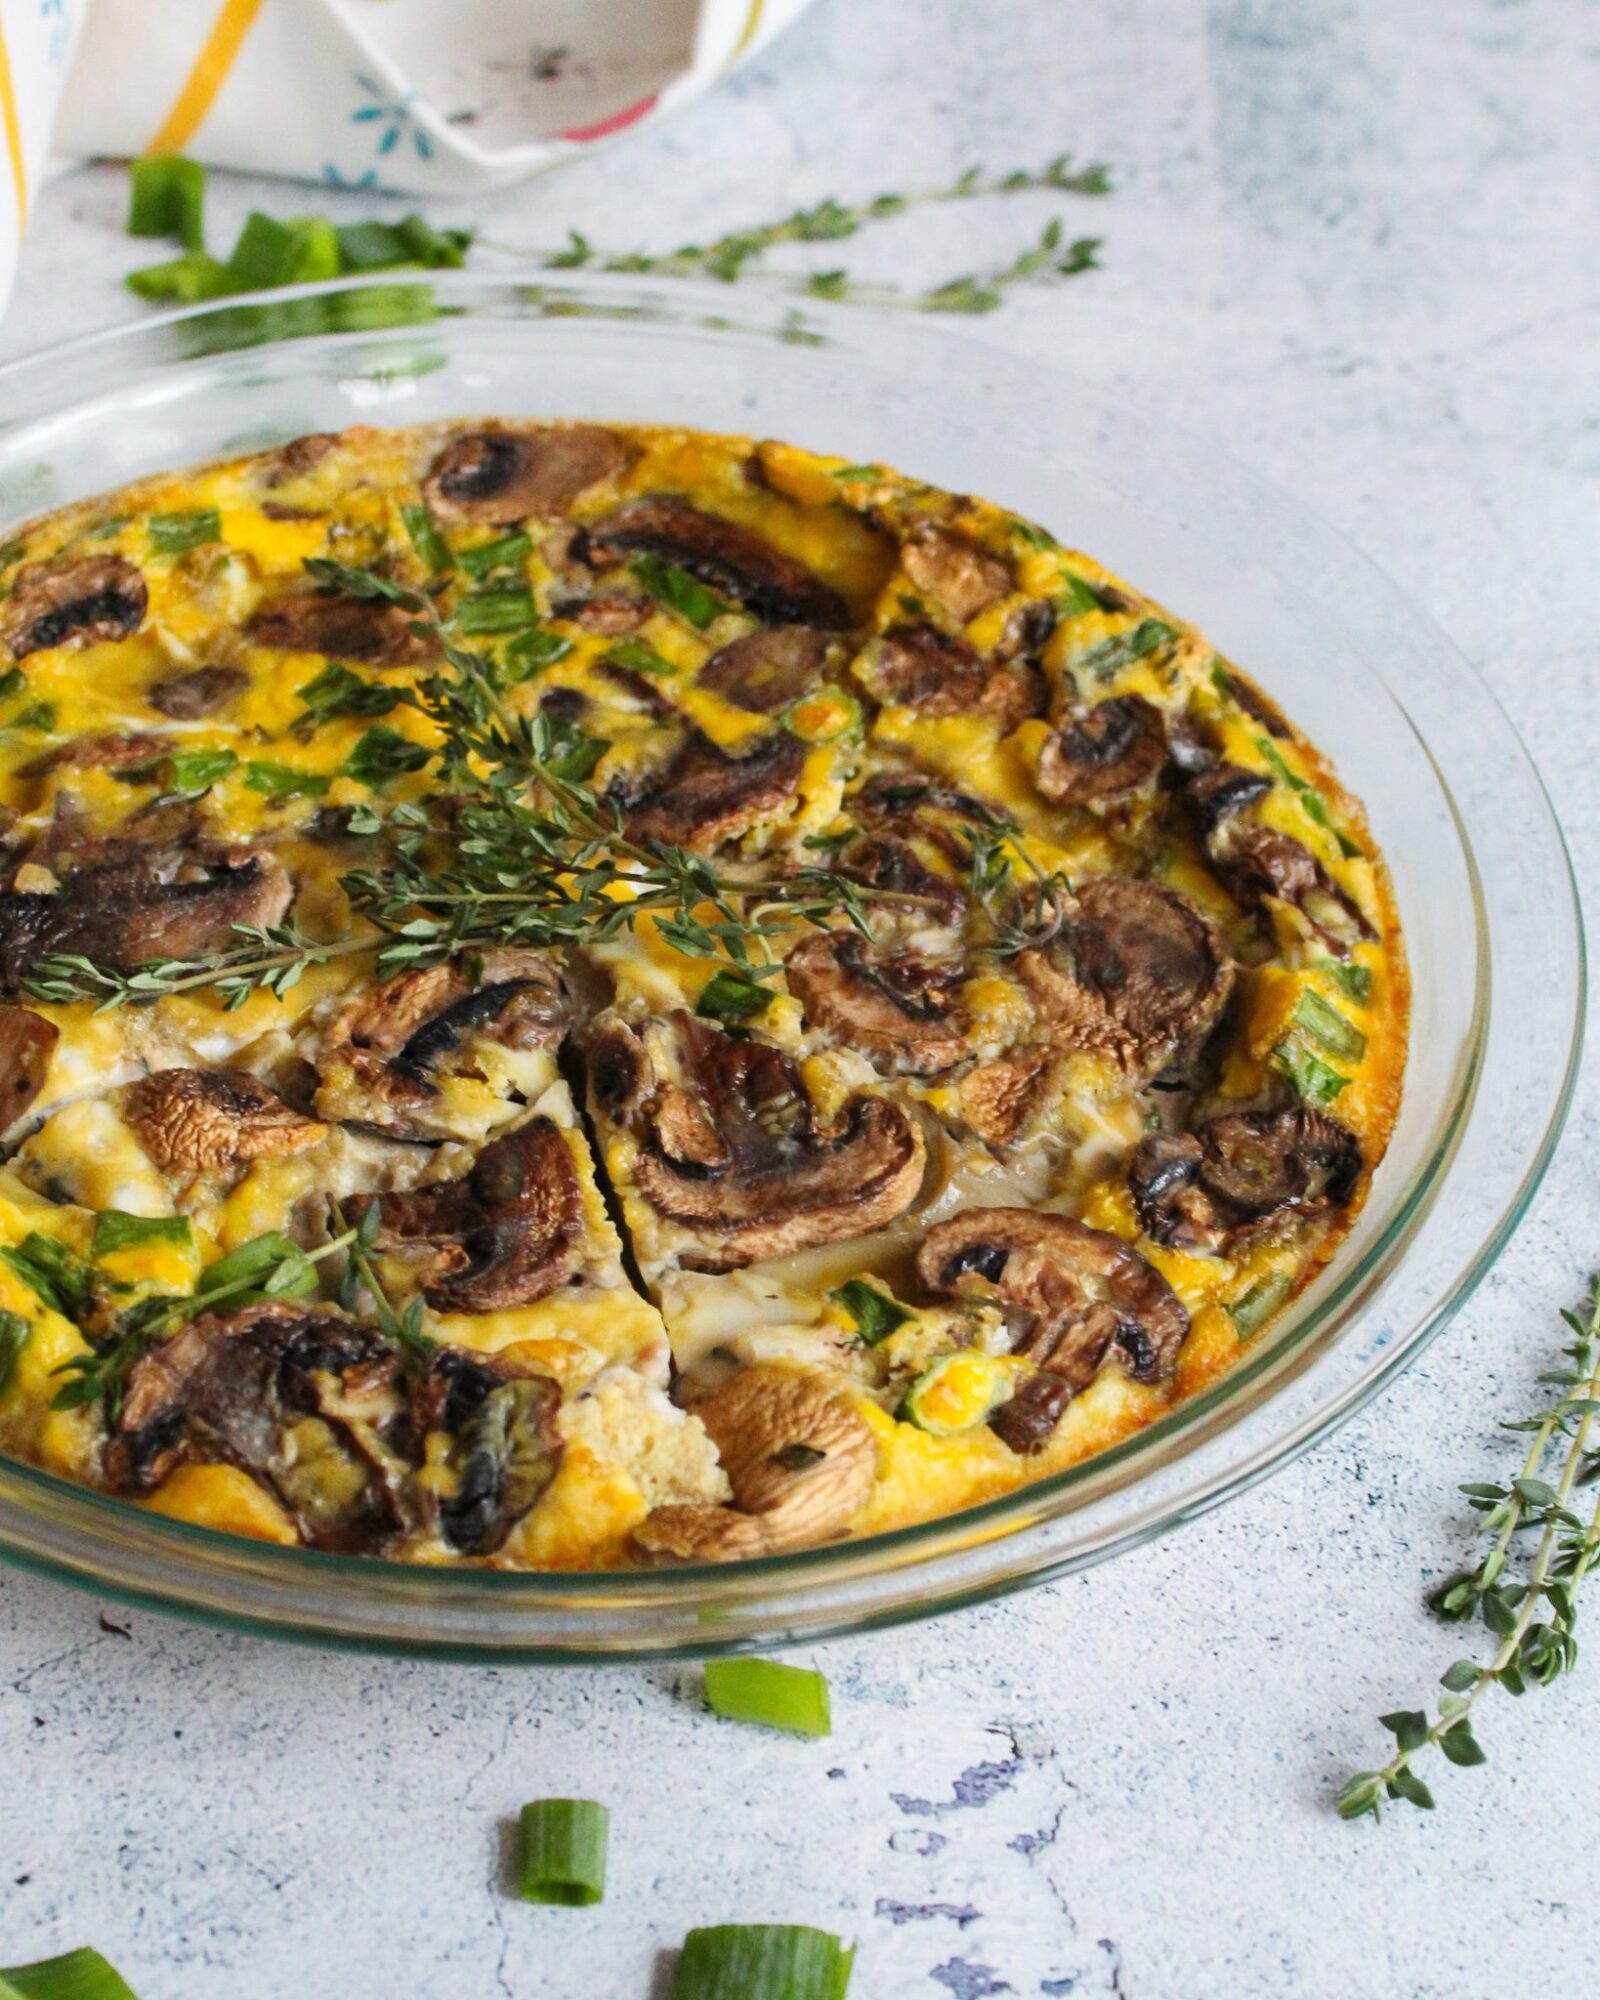 Paleo frittata baked with mushrooms, spinach, and fresh herbs for a delicious and easy breakfast! This recipe is Whole30 compliant, paleo, gluten free, and dairy free!